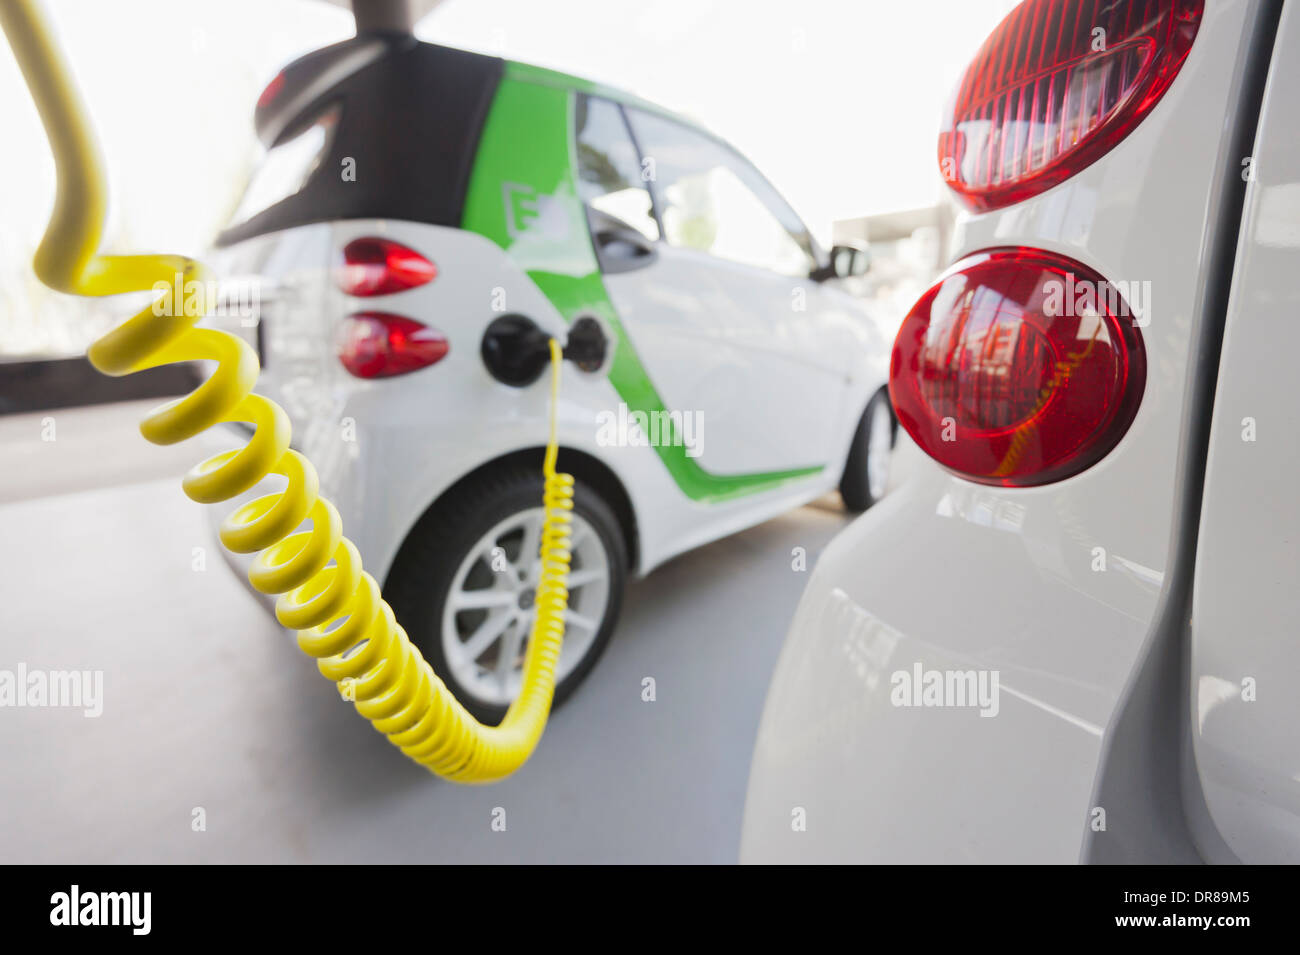 Electric vehicle charging at charge station - Stock Image